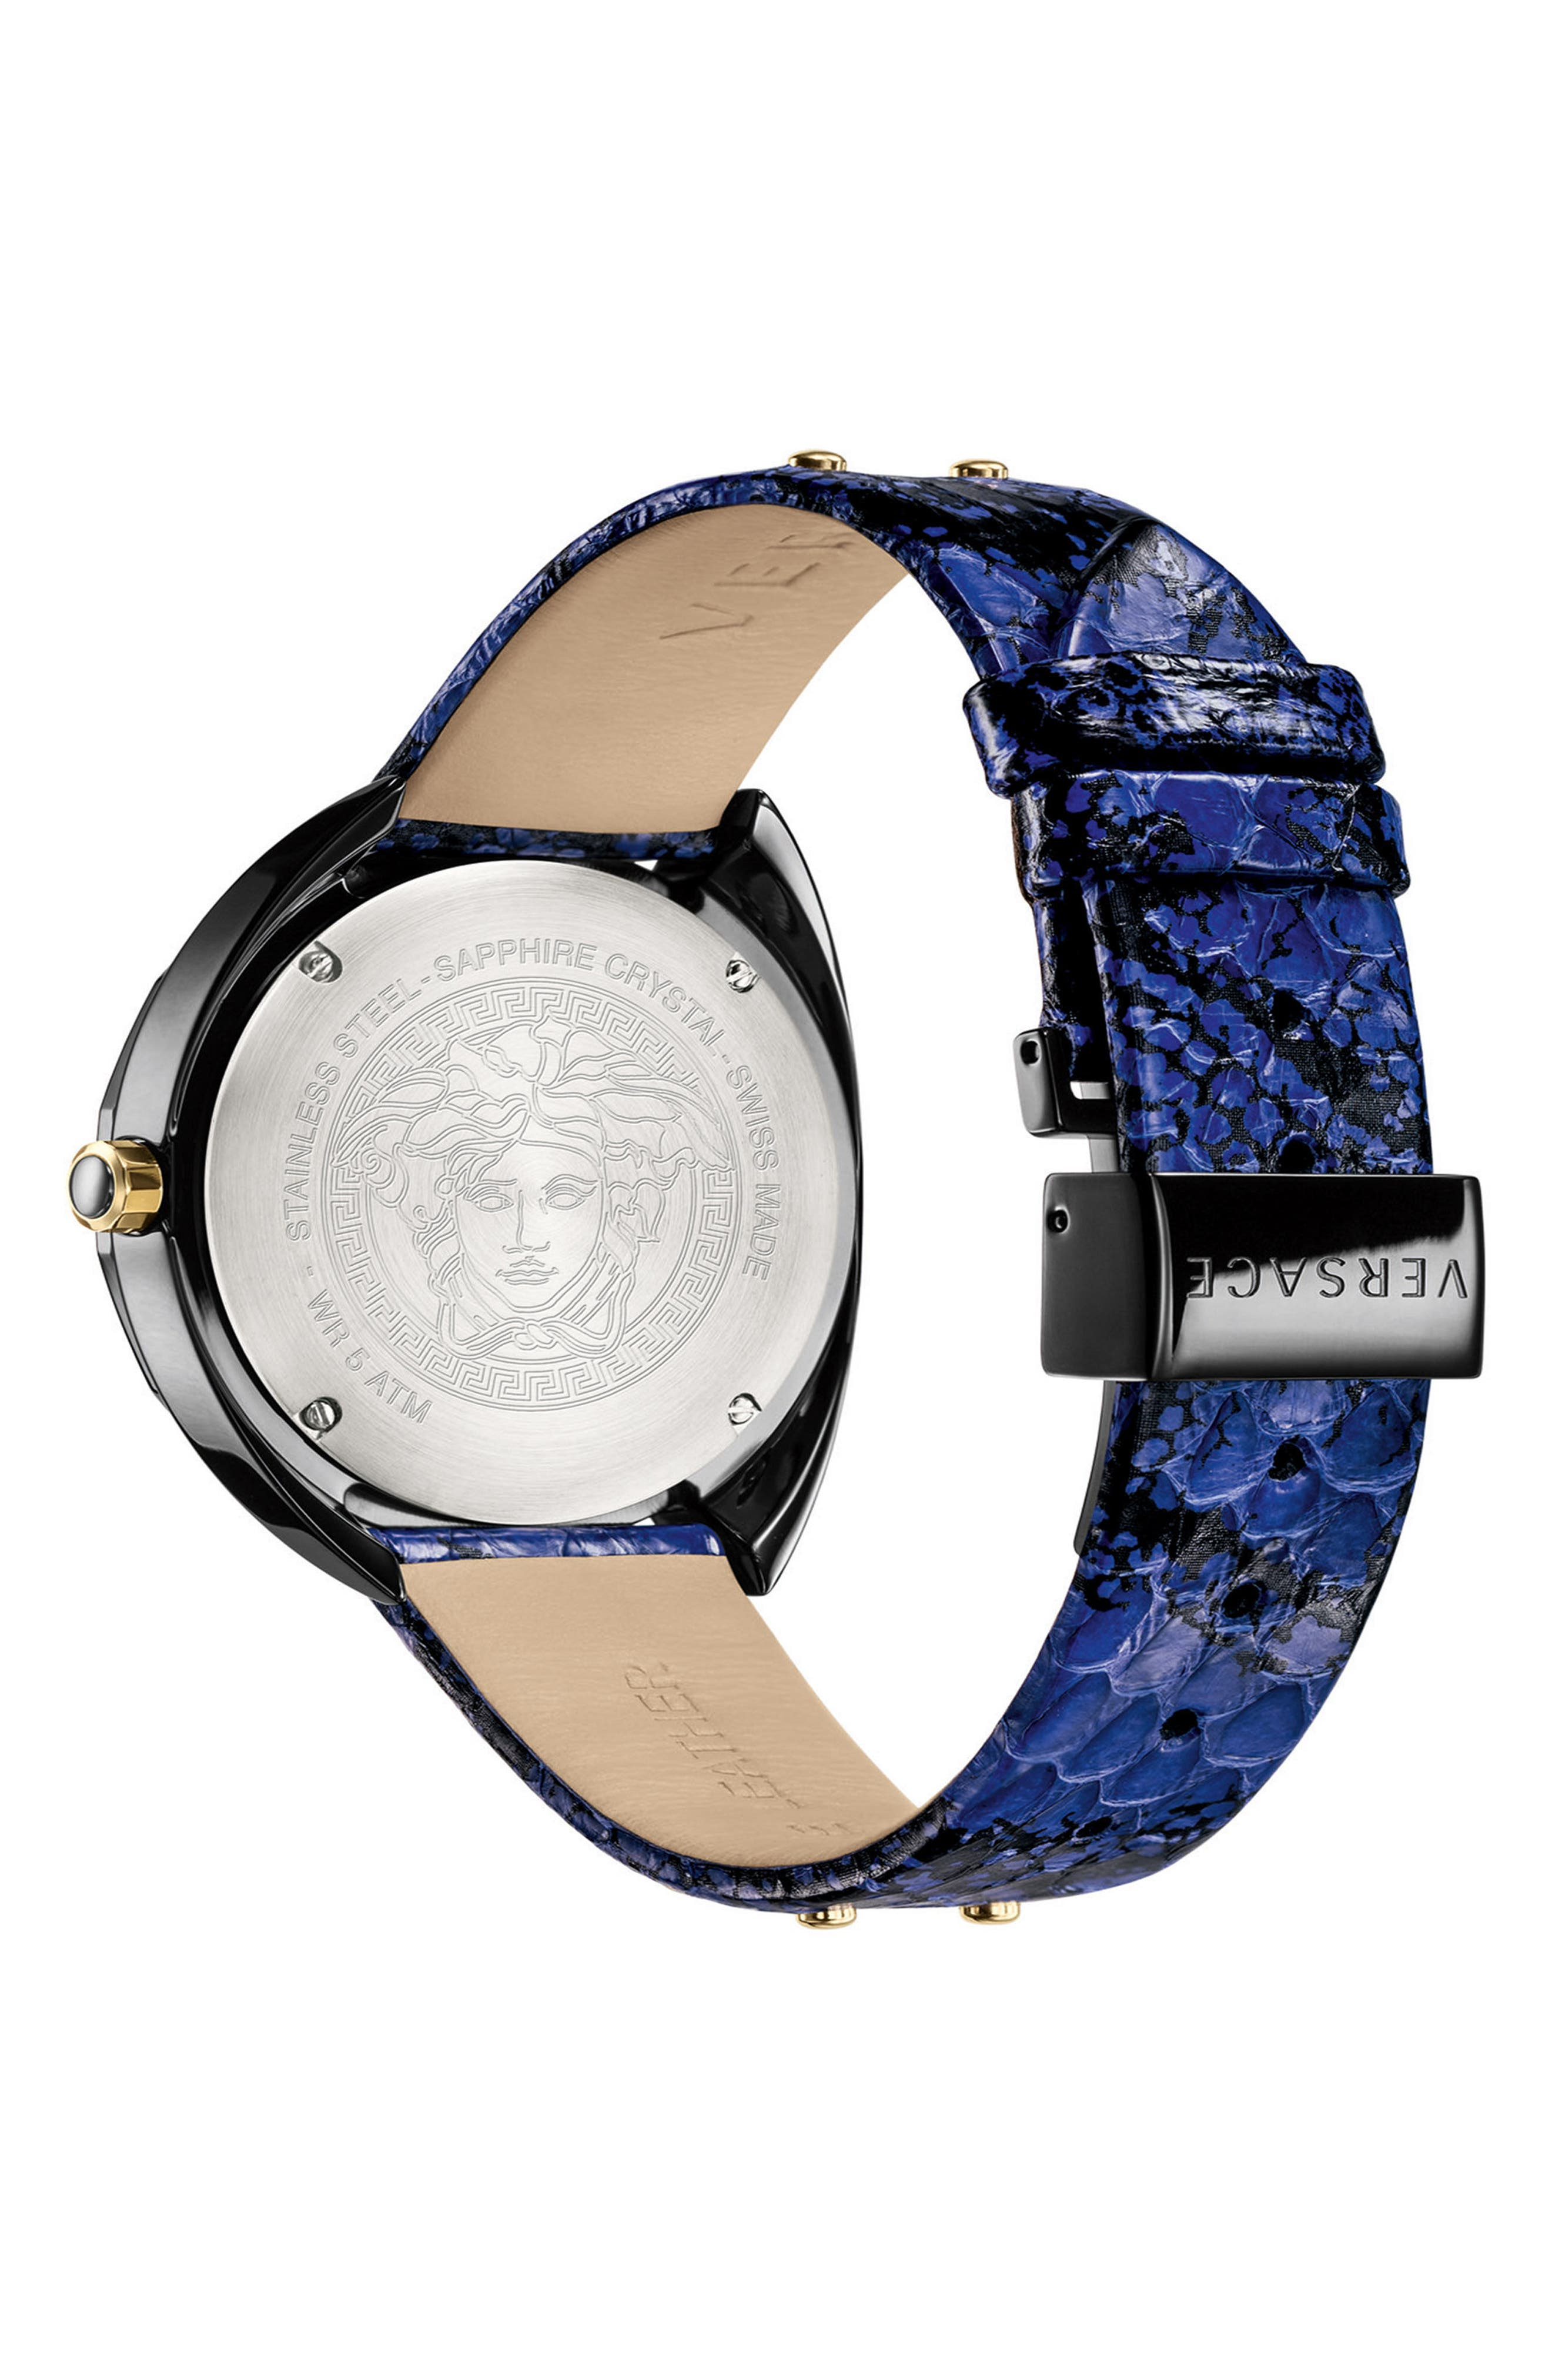 VERSACE,                             Shadov Snakeskin Leather Strap Watch, 38mm,                             Alternate thumbnail 2, color,                             BLUE/ BLACK